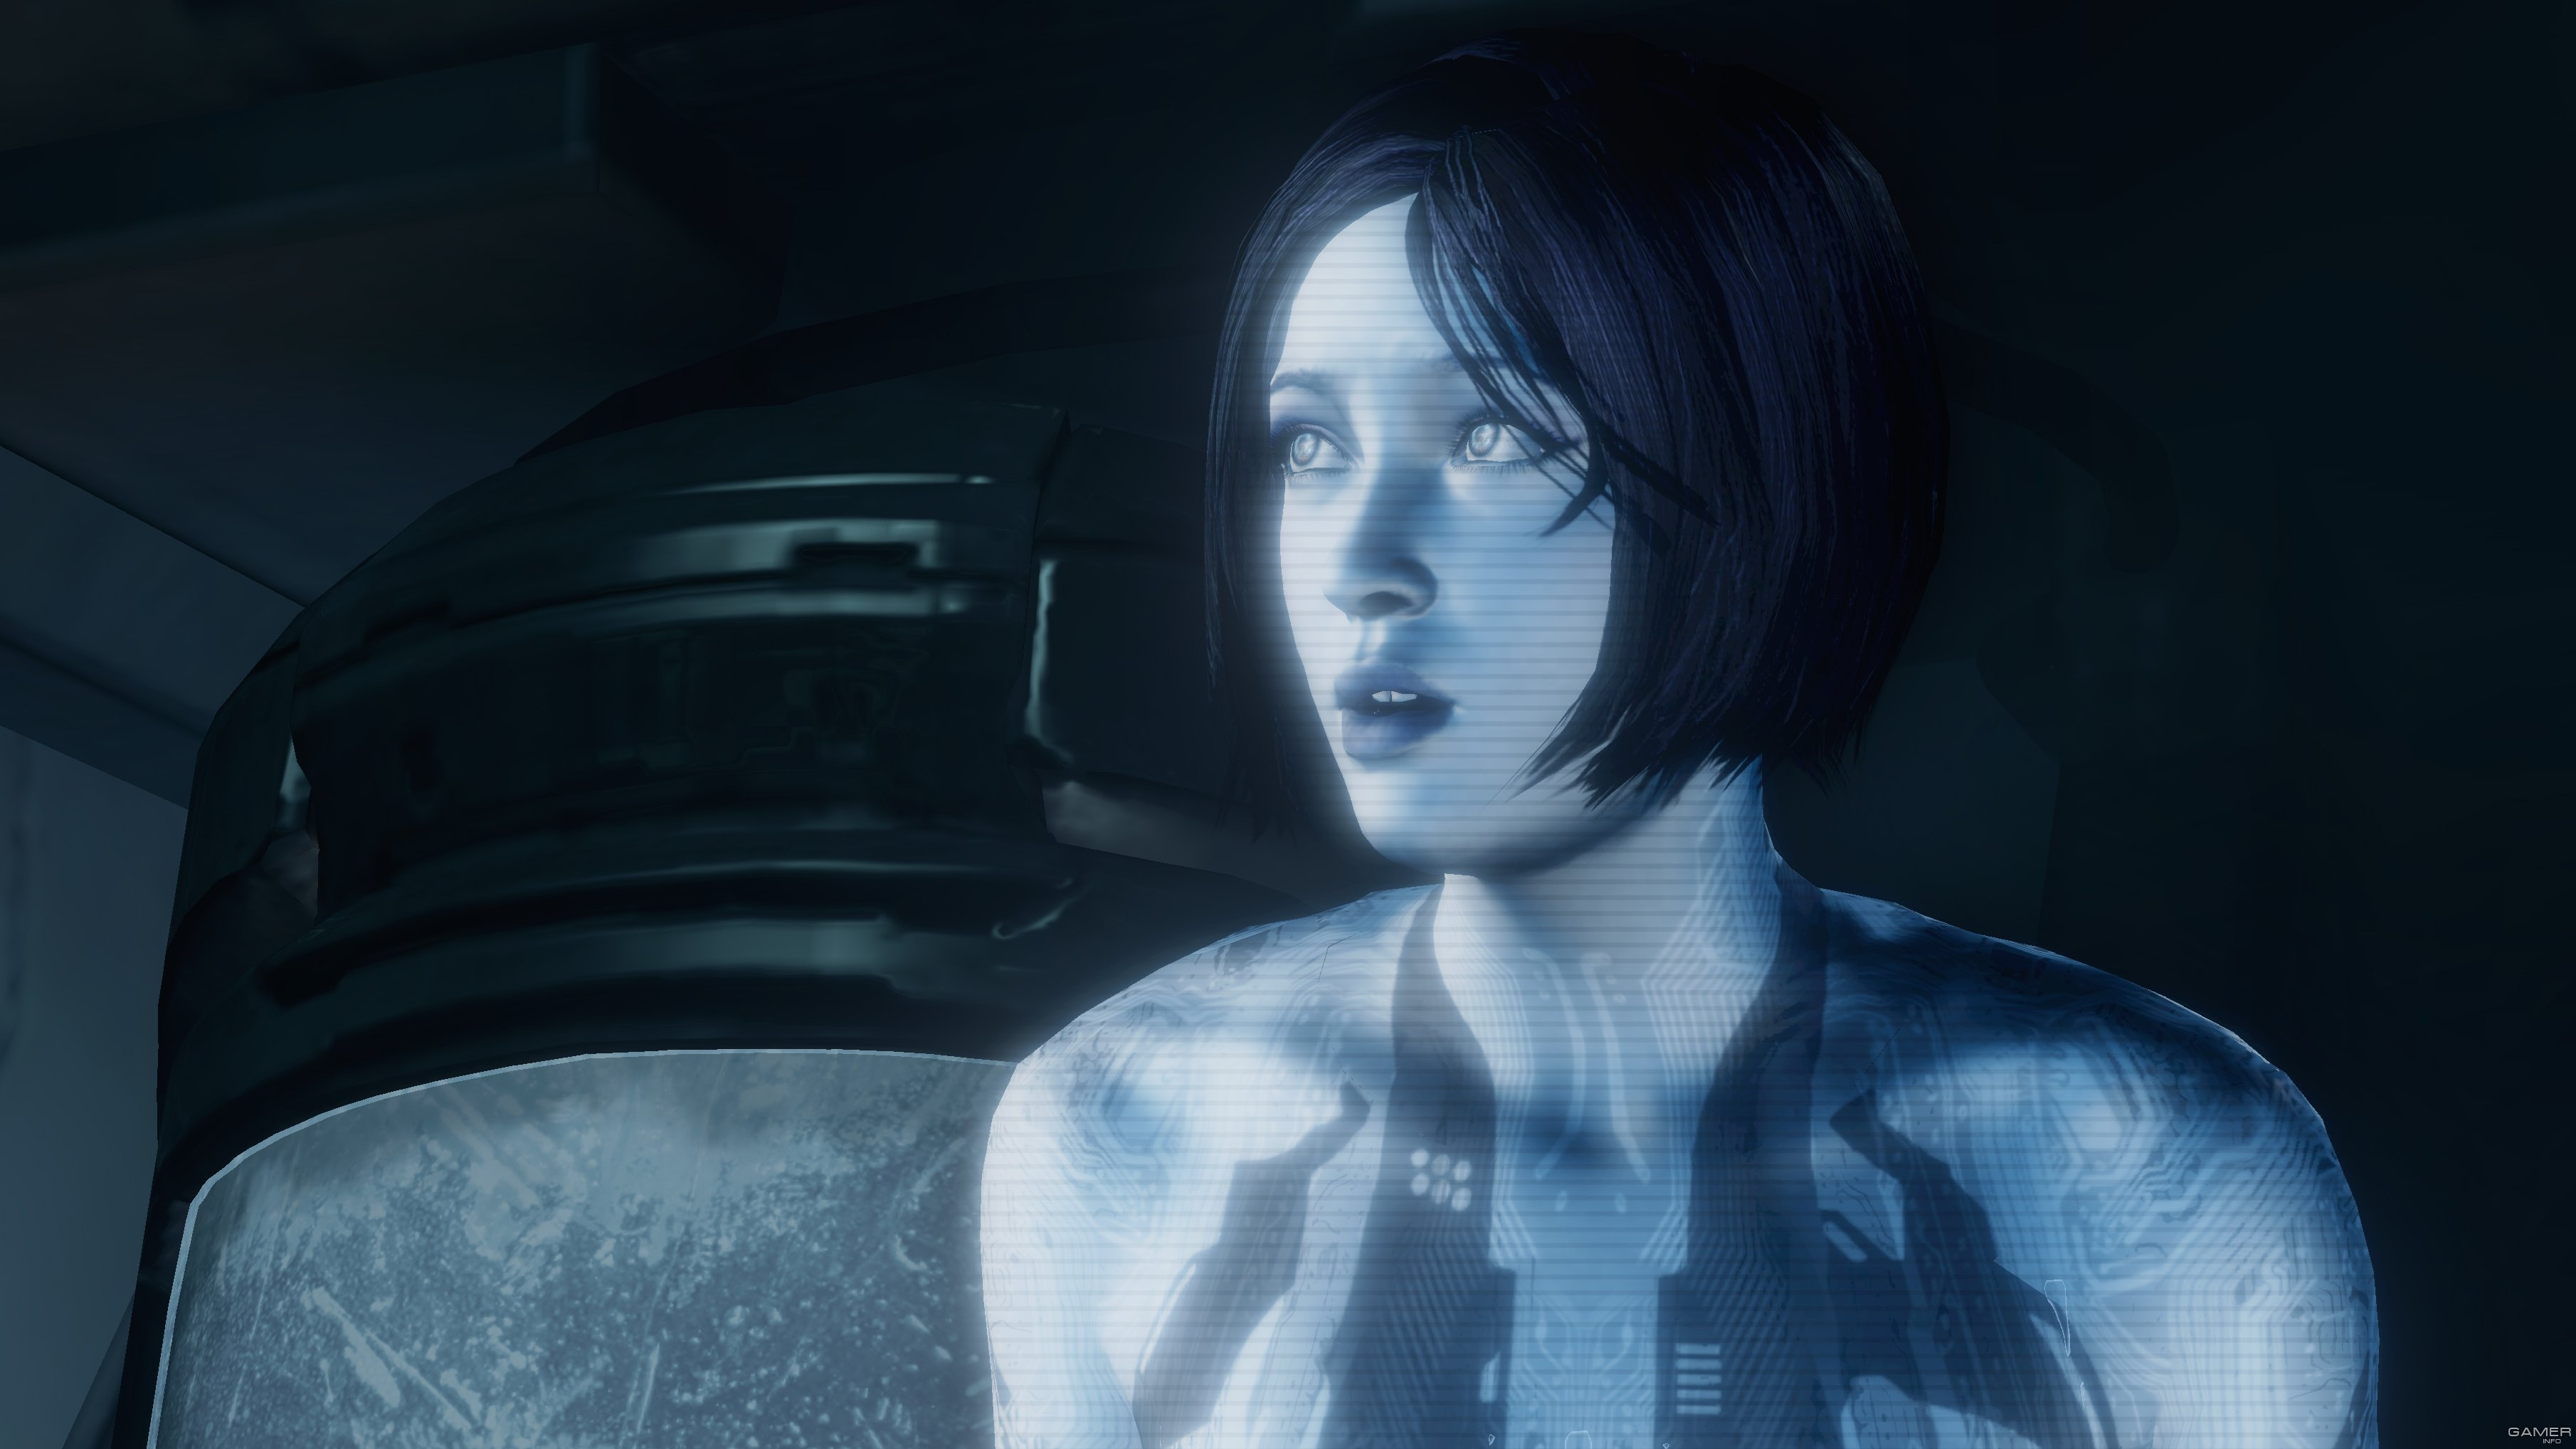 Cortana halo nation the halo encyclopedia halo 1 - Halo 4 pictures ...